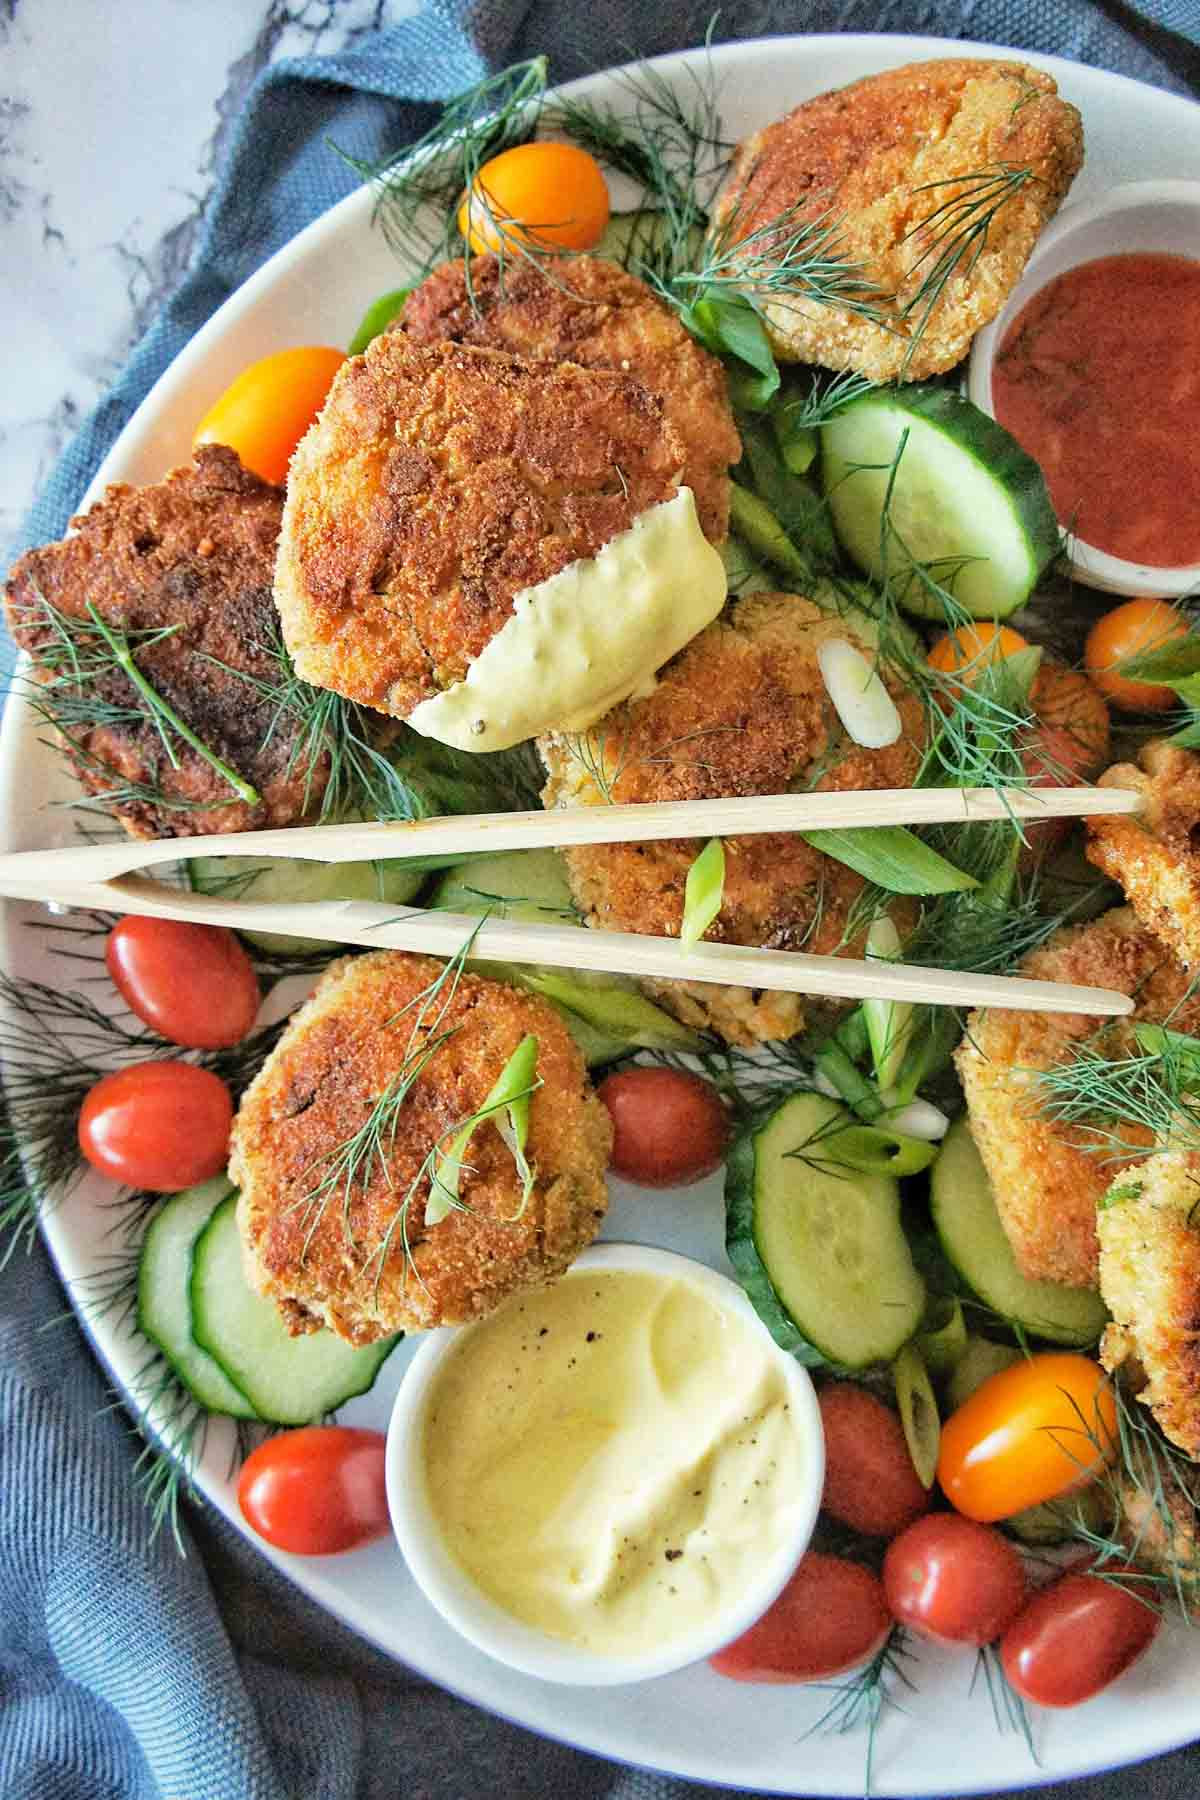 Crab cake that has been dipped in yellow sauce and place on a platter with salad and serving tongs